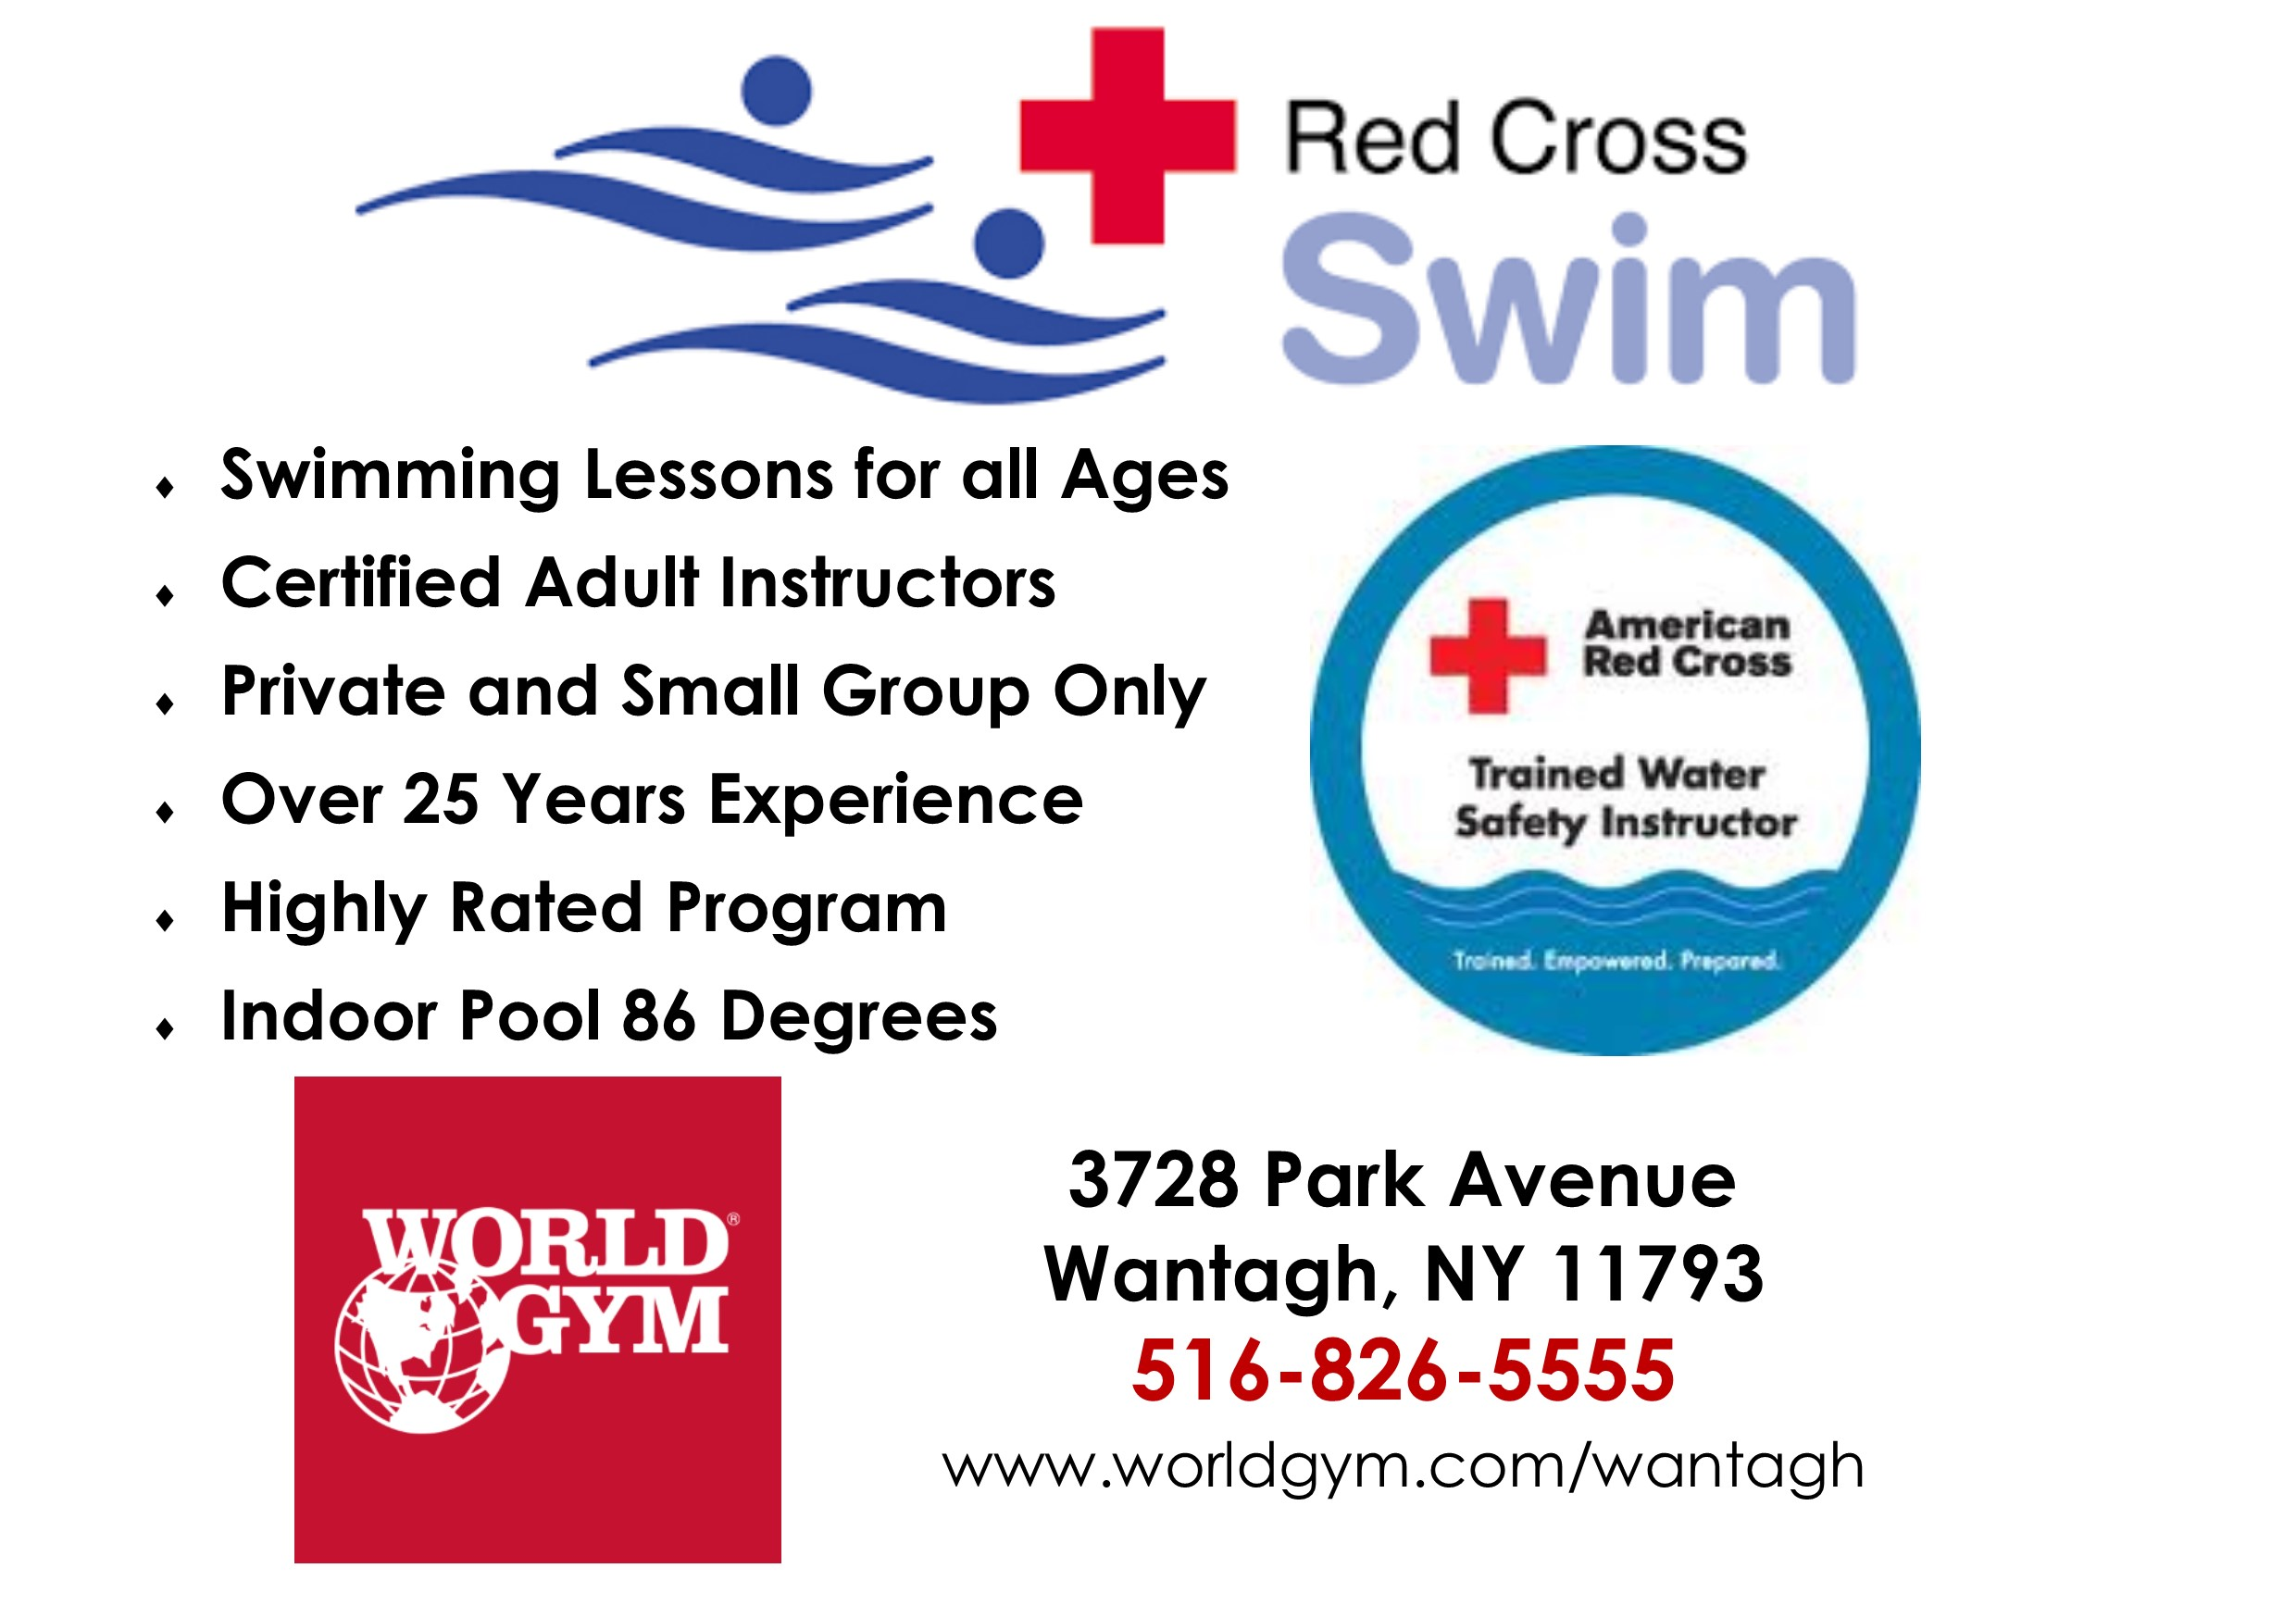 Wantagh | Your Local World Gym | Your Body, Your Goals